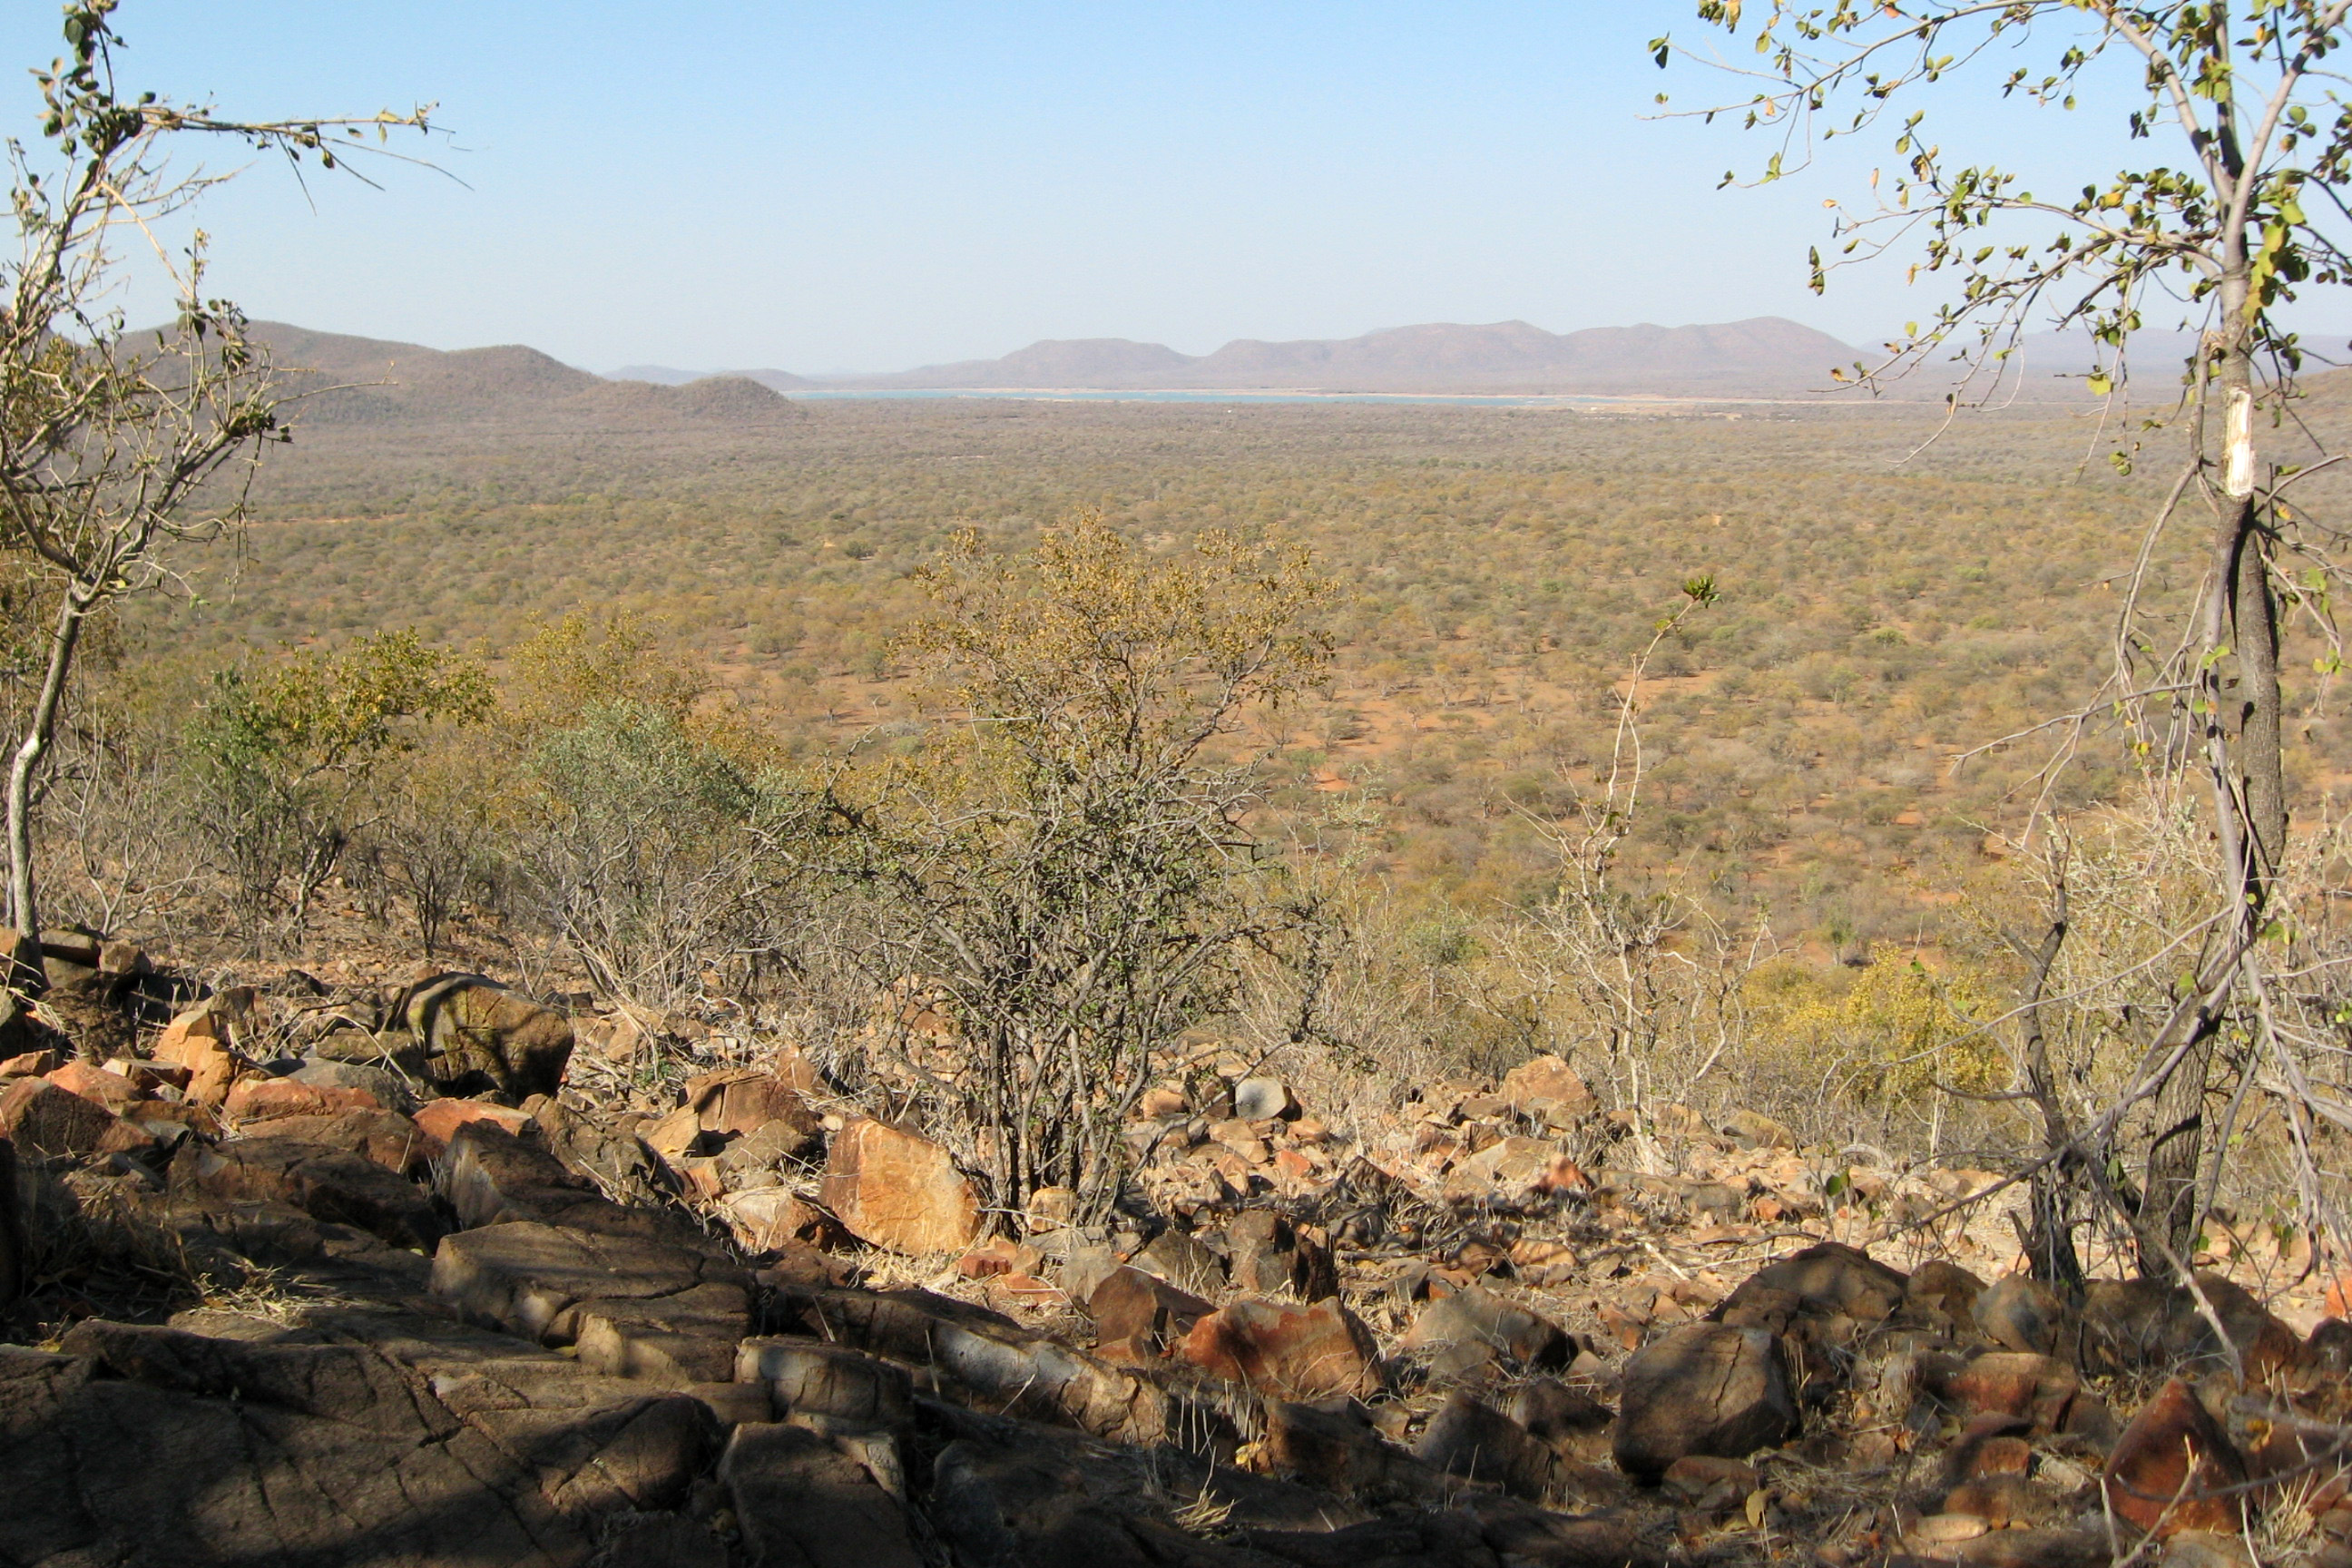 Mokolodi Nature Reserve - A wondrous excursion spot for those visiting Botswana